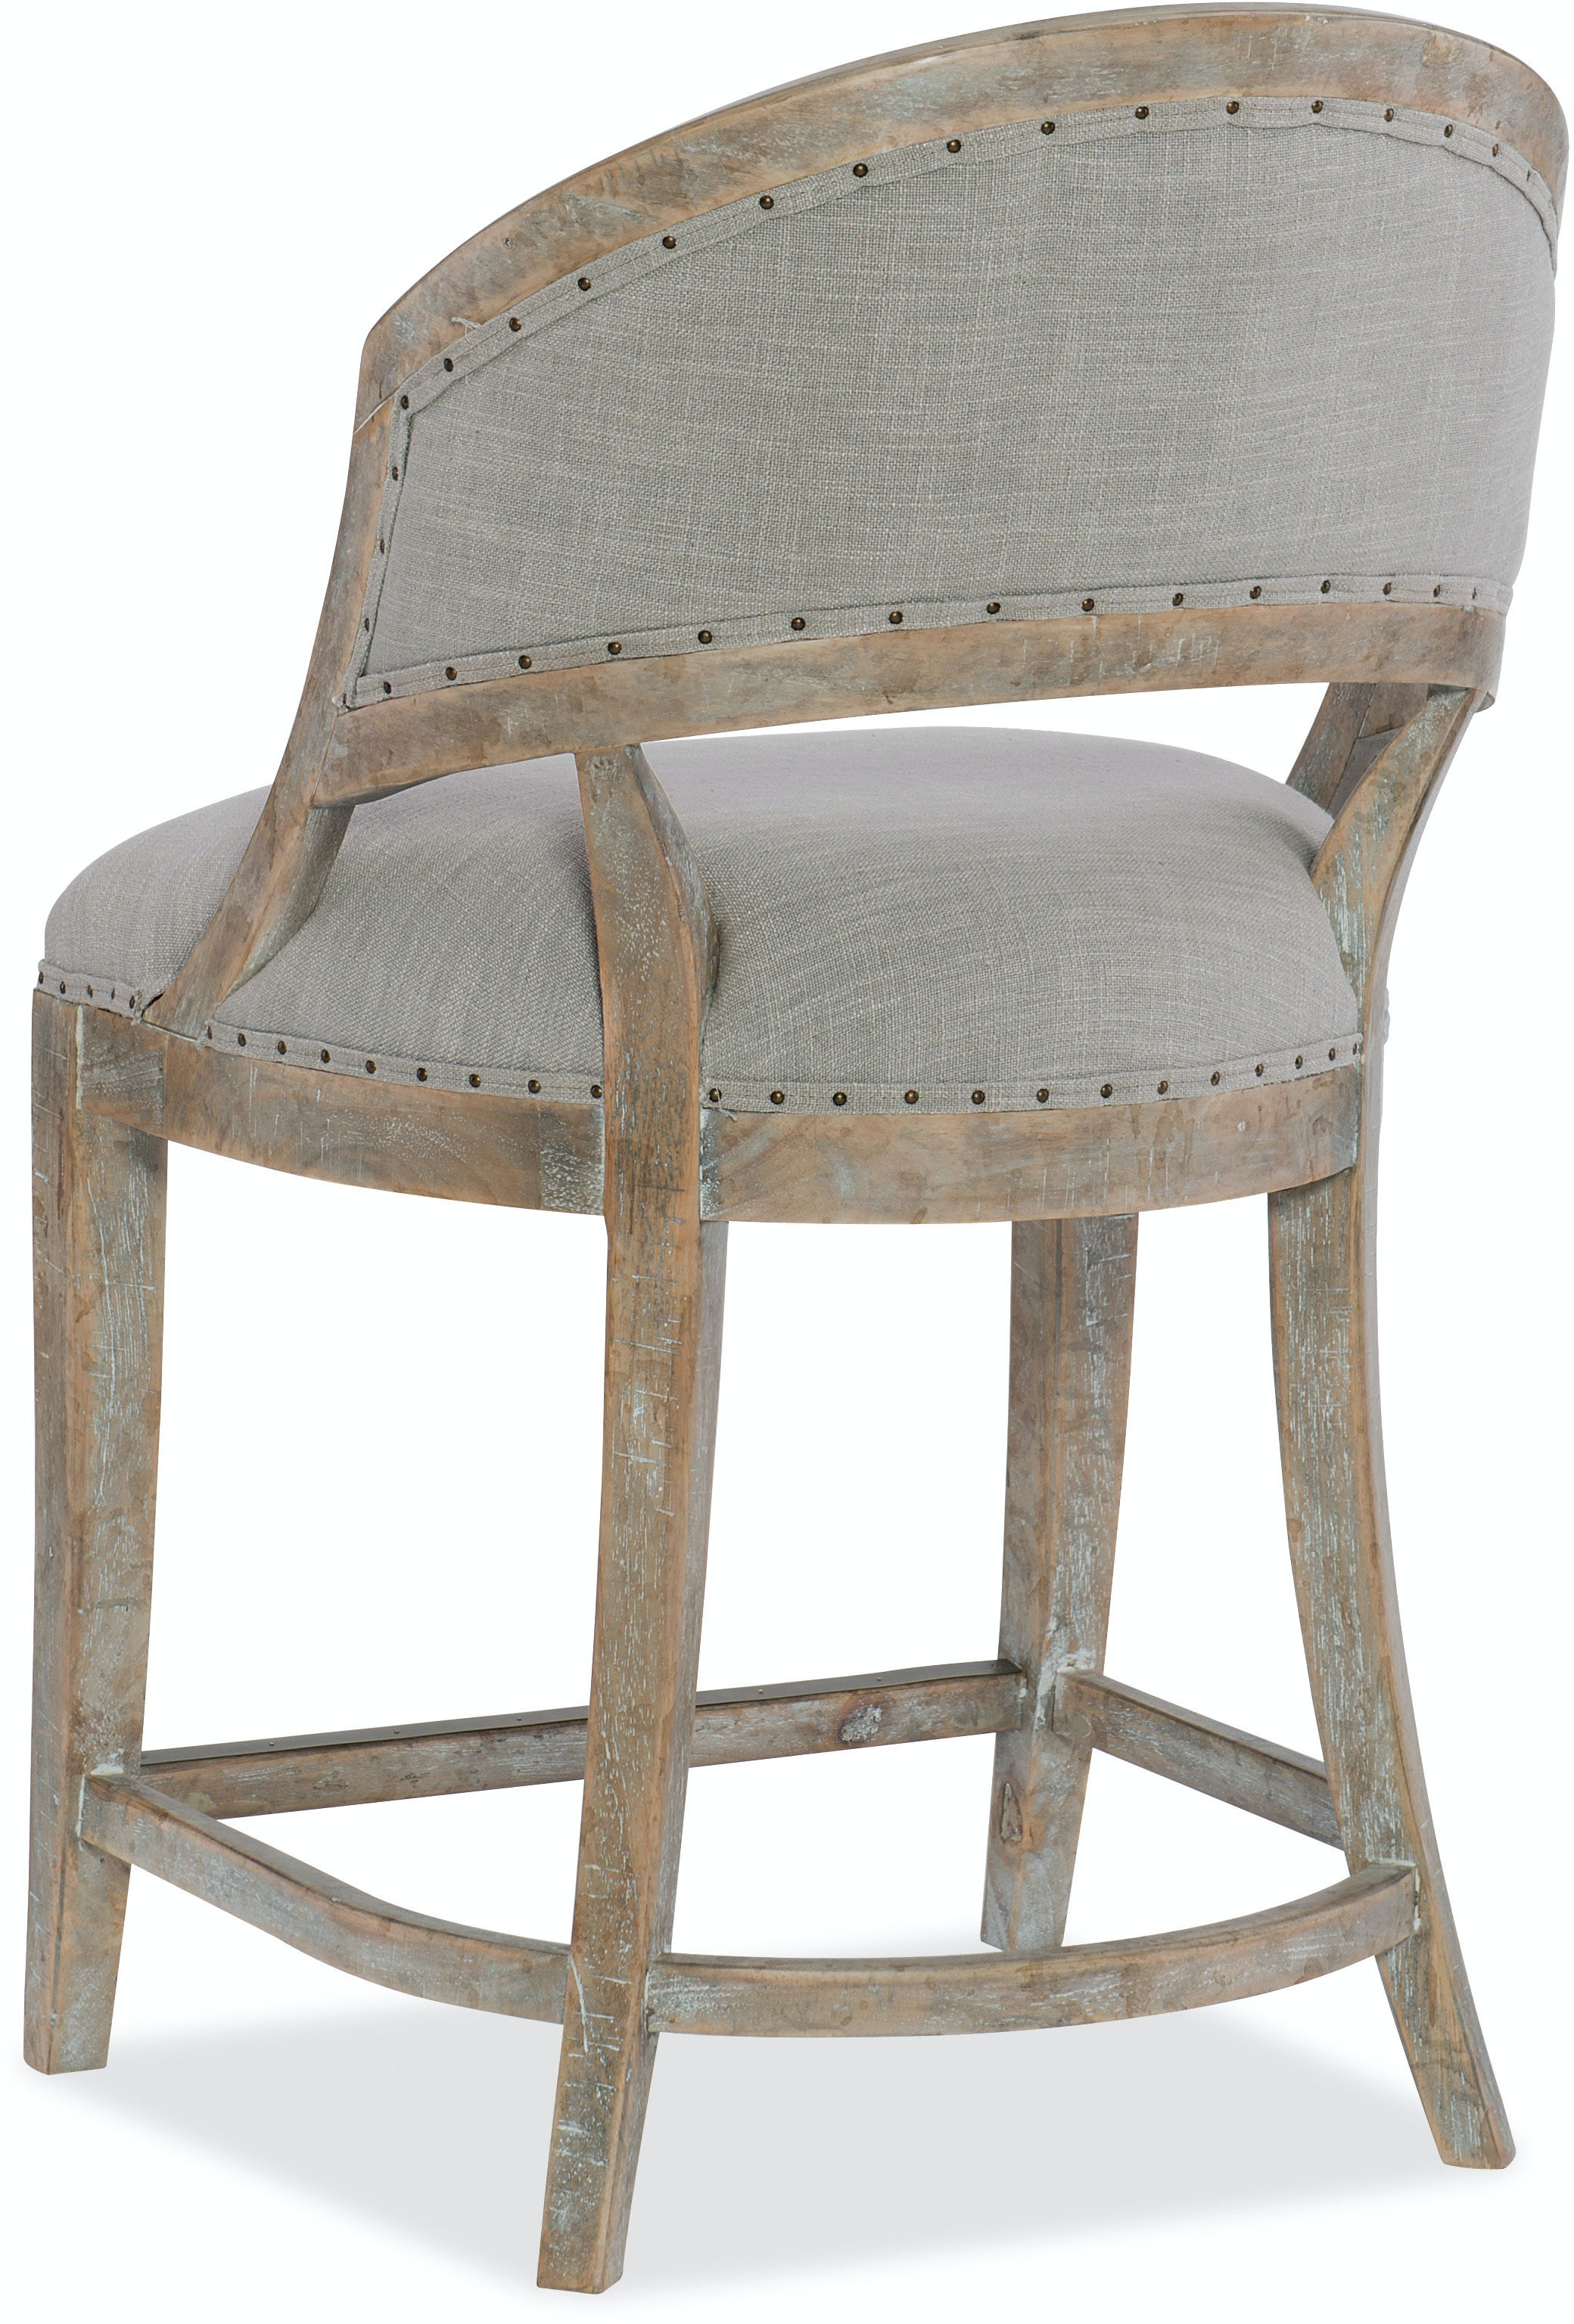 Boheme Garnier Barrel Back Counter Stool 5750 25350 MWD : 5750 25350 mwd silo back from www.smithe.com size 1024 x 768 jpeg 38kB